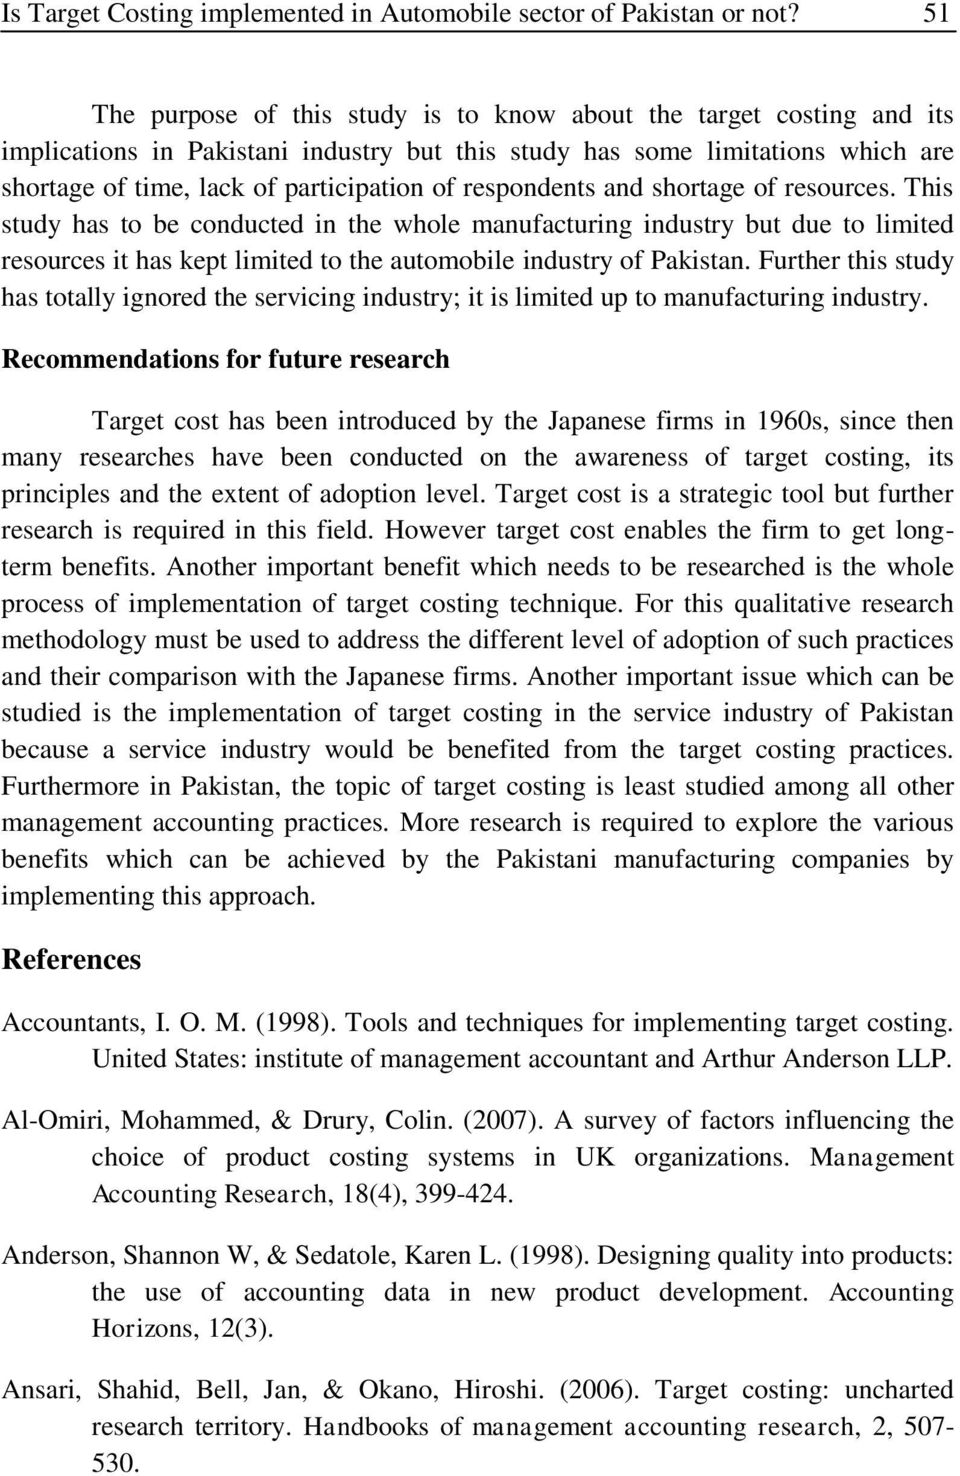 research report on automobile industry in pakistan